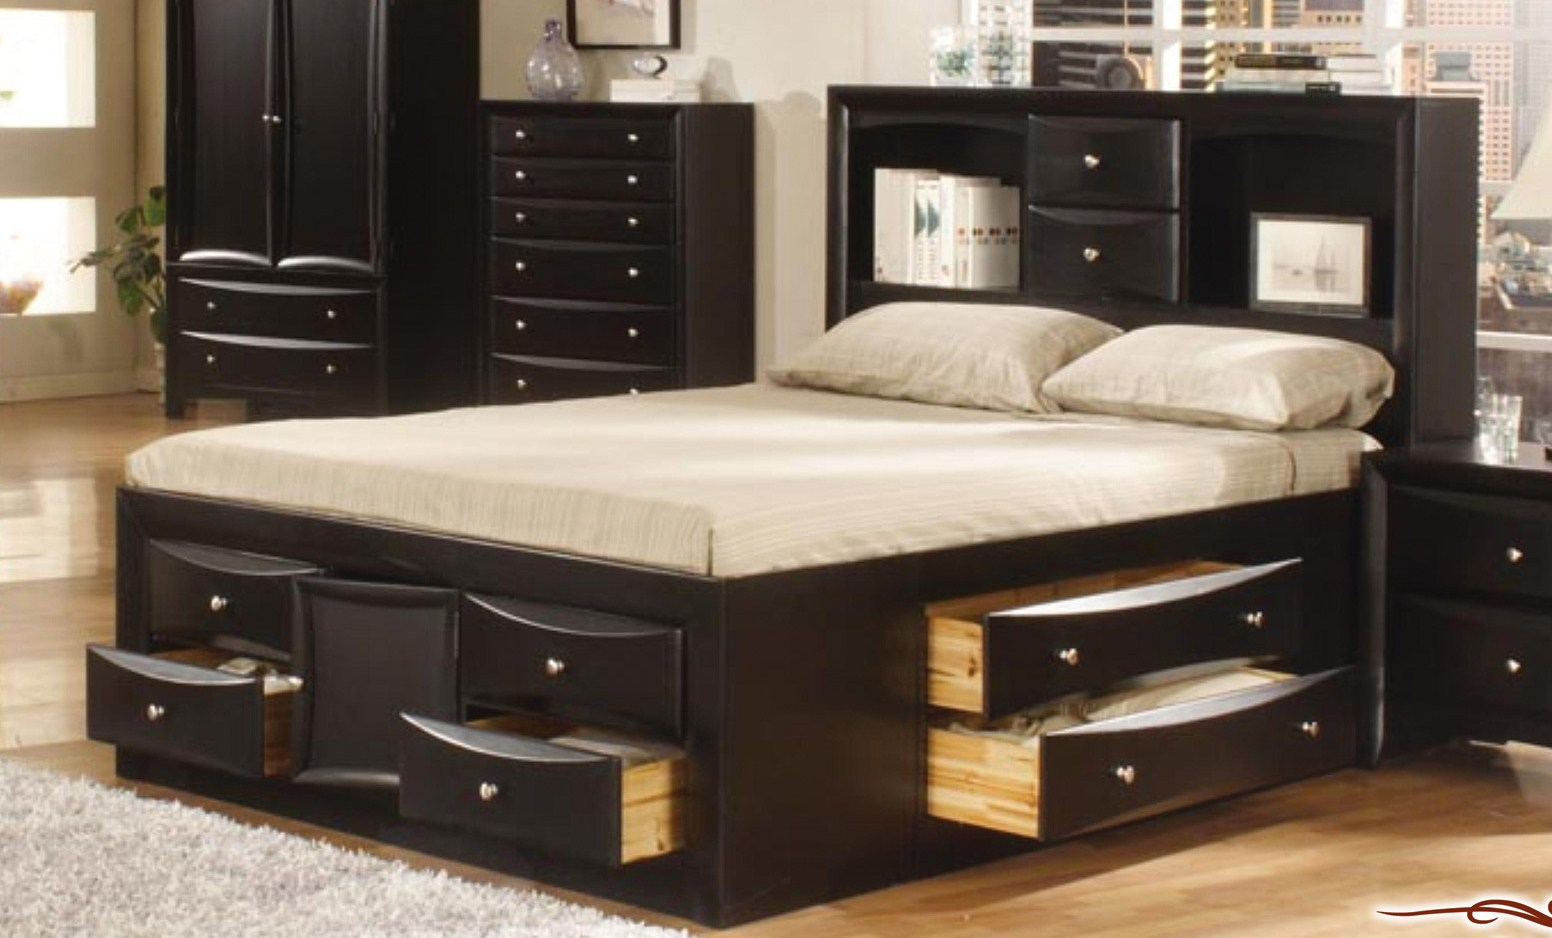 Plans For Building A Bed With Storage